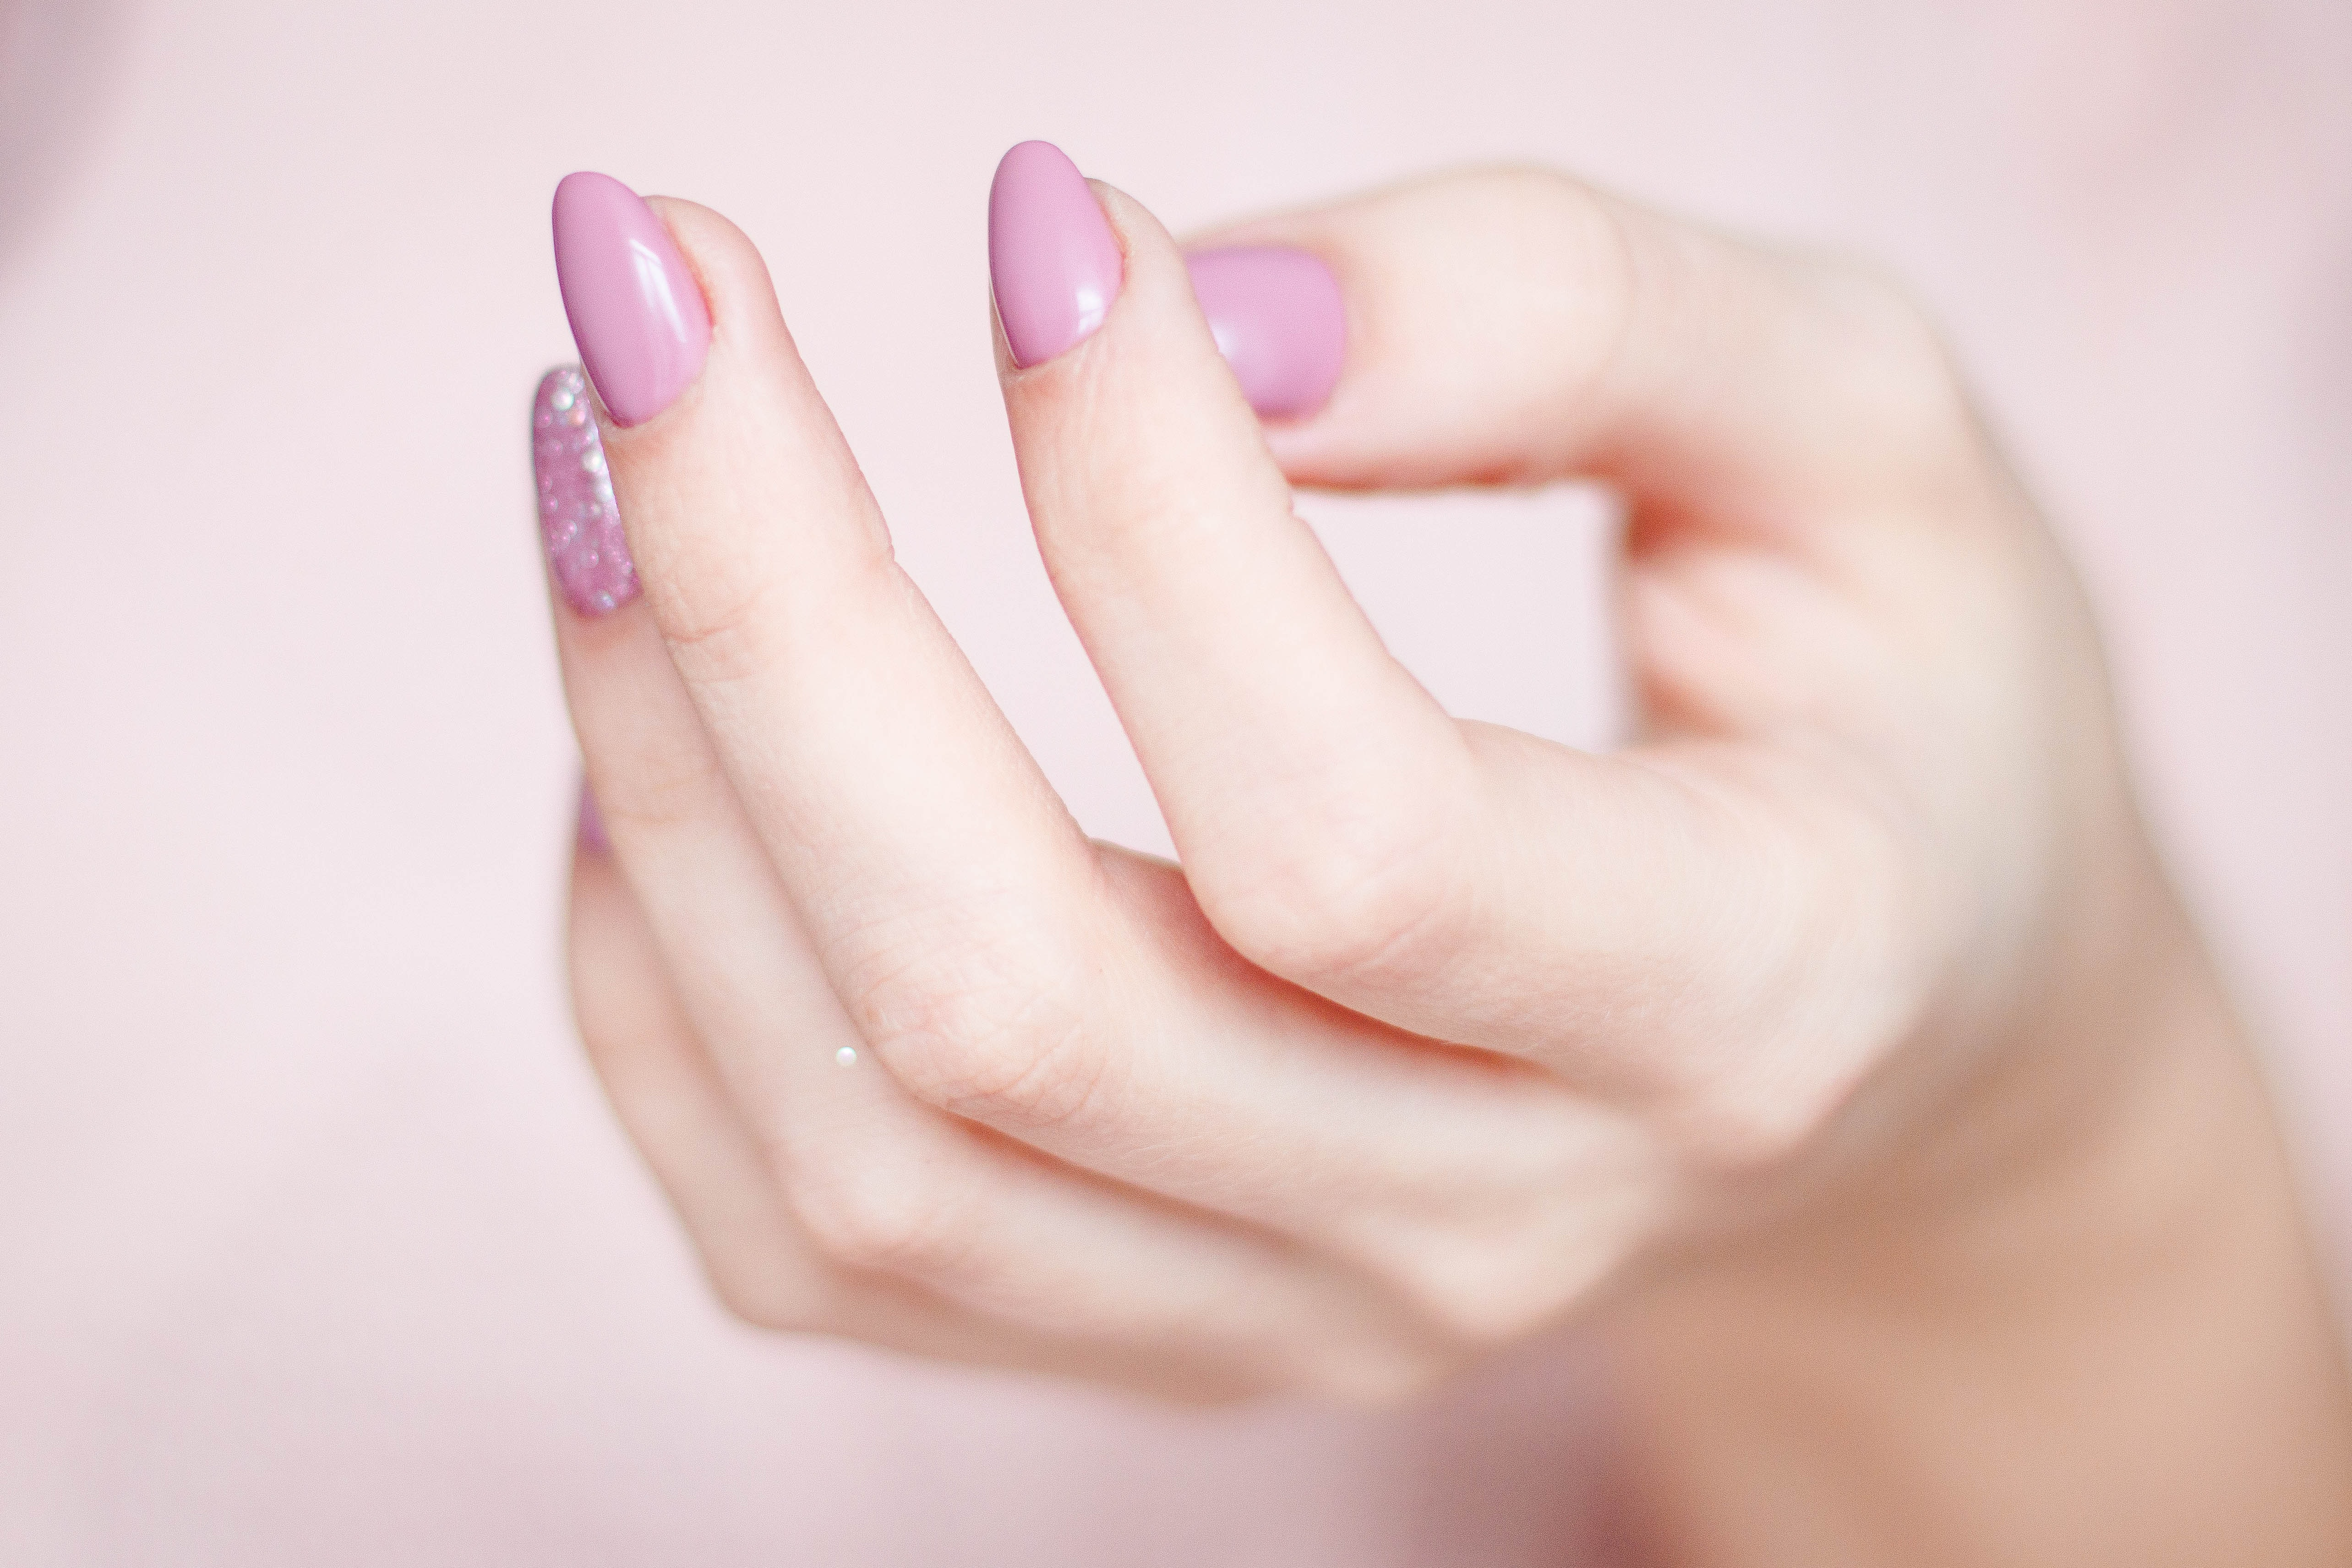 Person's Hand With Pink Manicure, Care, Clean, Close-up, Color, HQ Photo